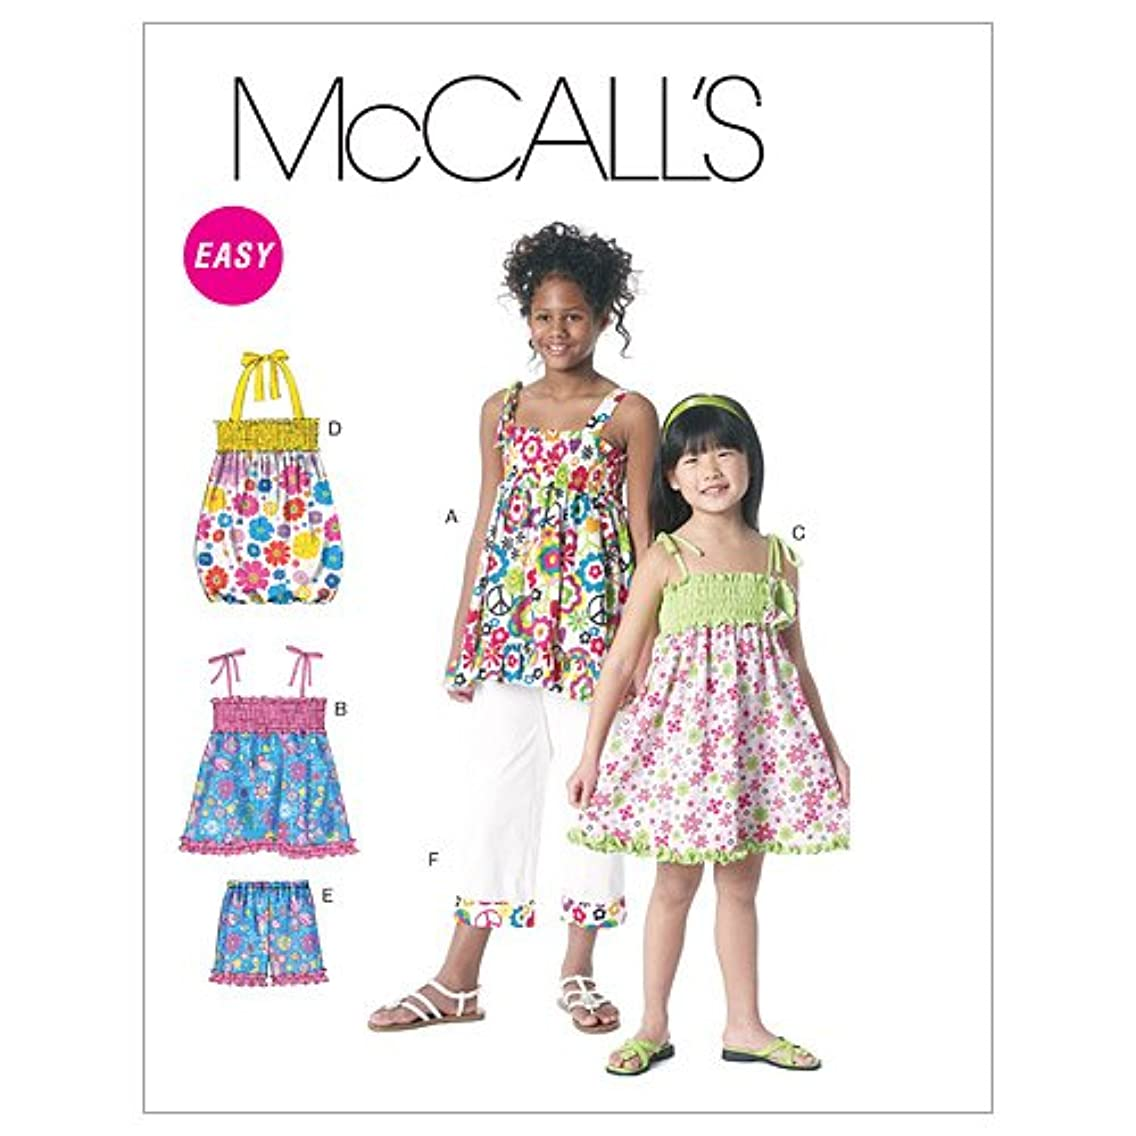 McCall's Patterns M6314 Children's/Girls' Tops, Dresses, Shorts and Capri Pants, Size CX (XSmall-Small)